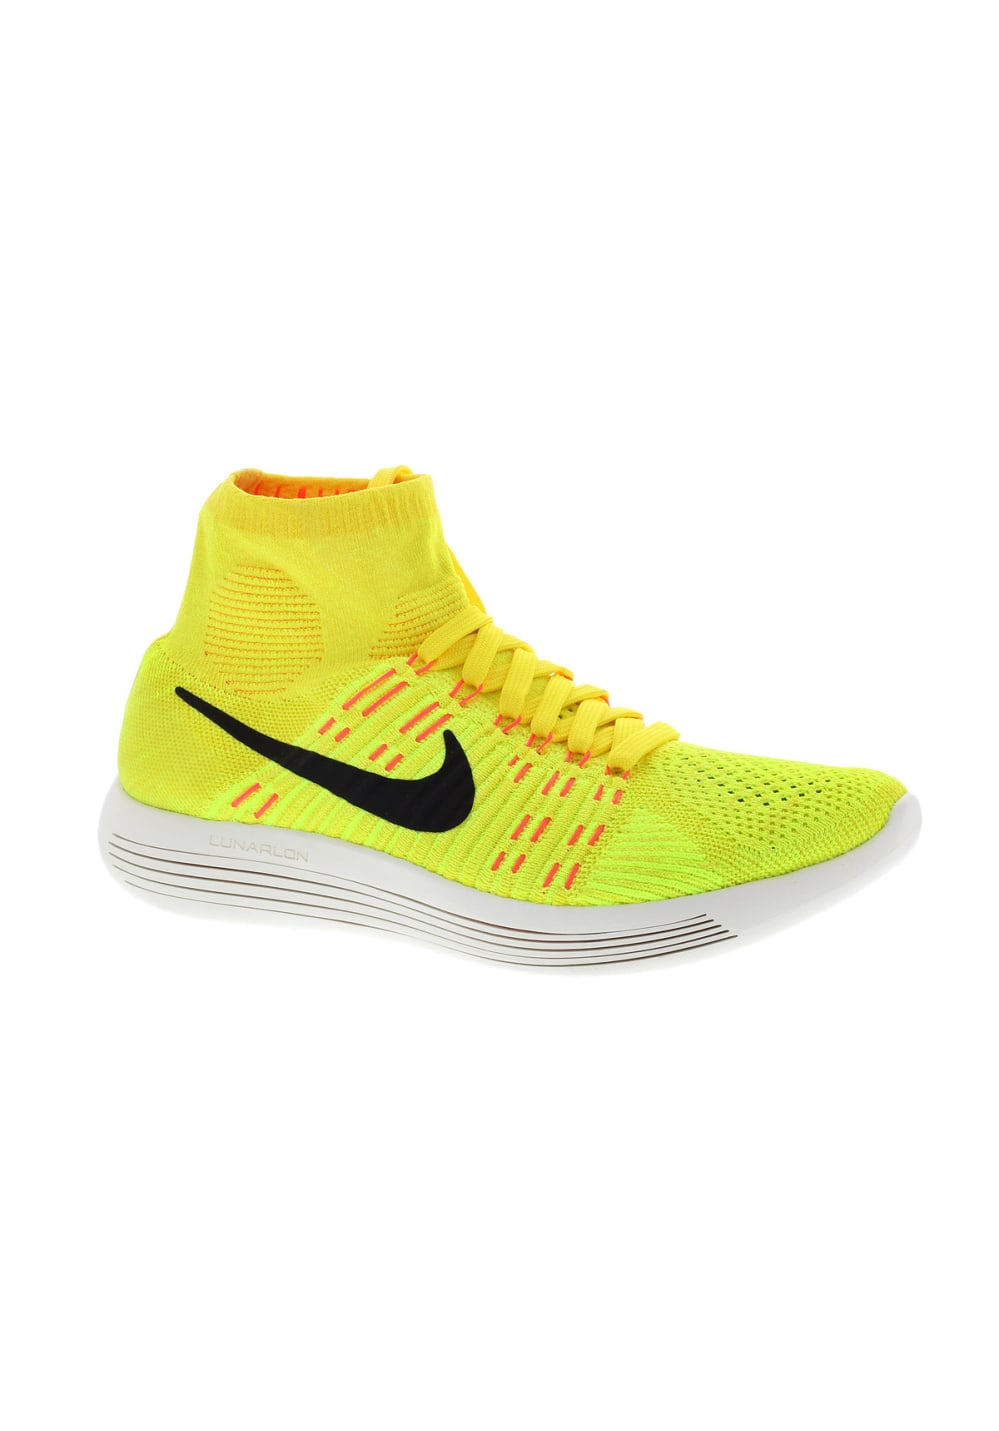 taille 40 3ebee 012ac Nike Flyknit Lunarepic - Chaussures running pour Femme - Jaune